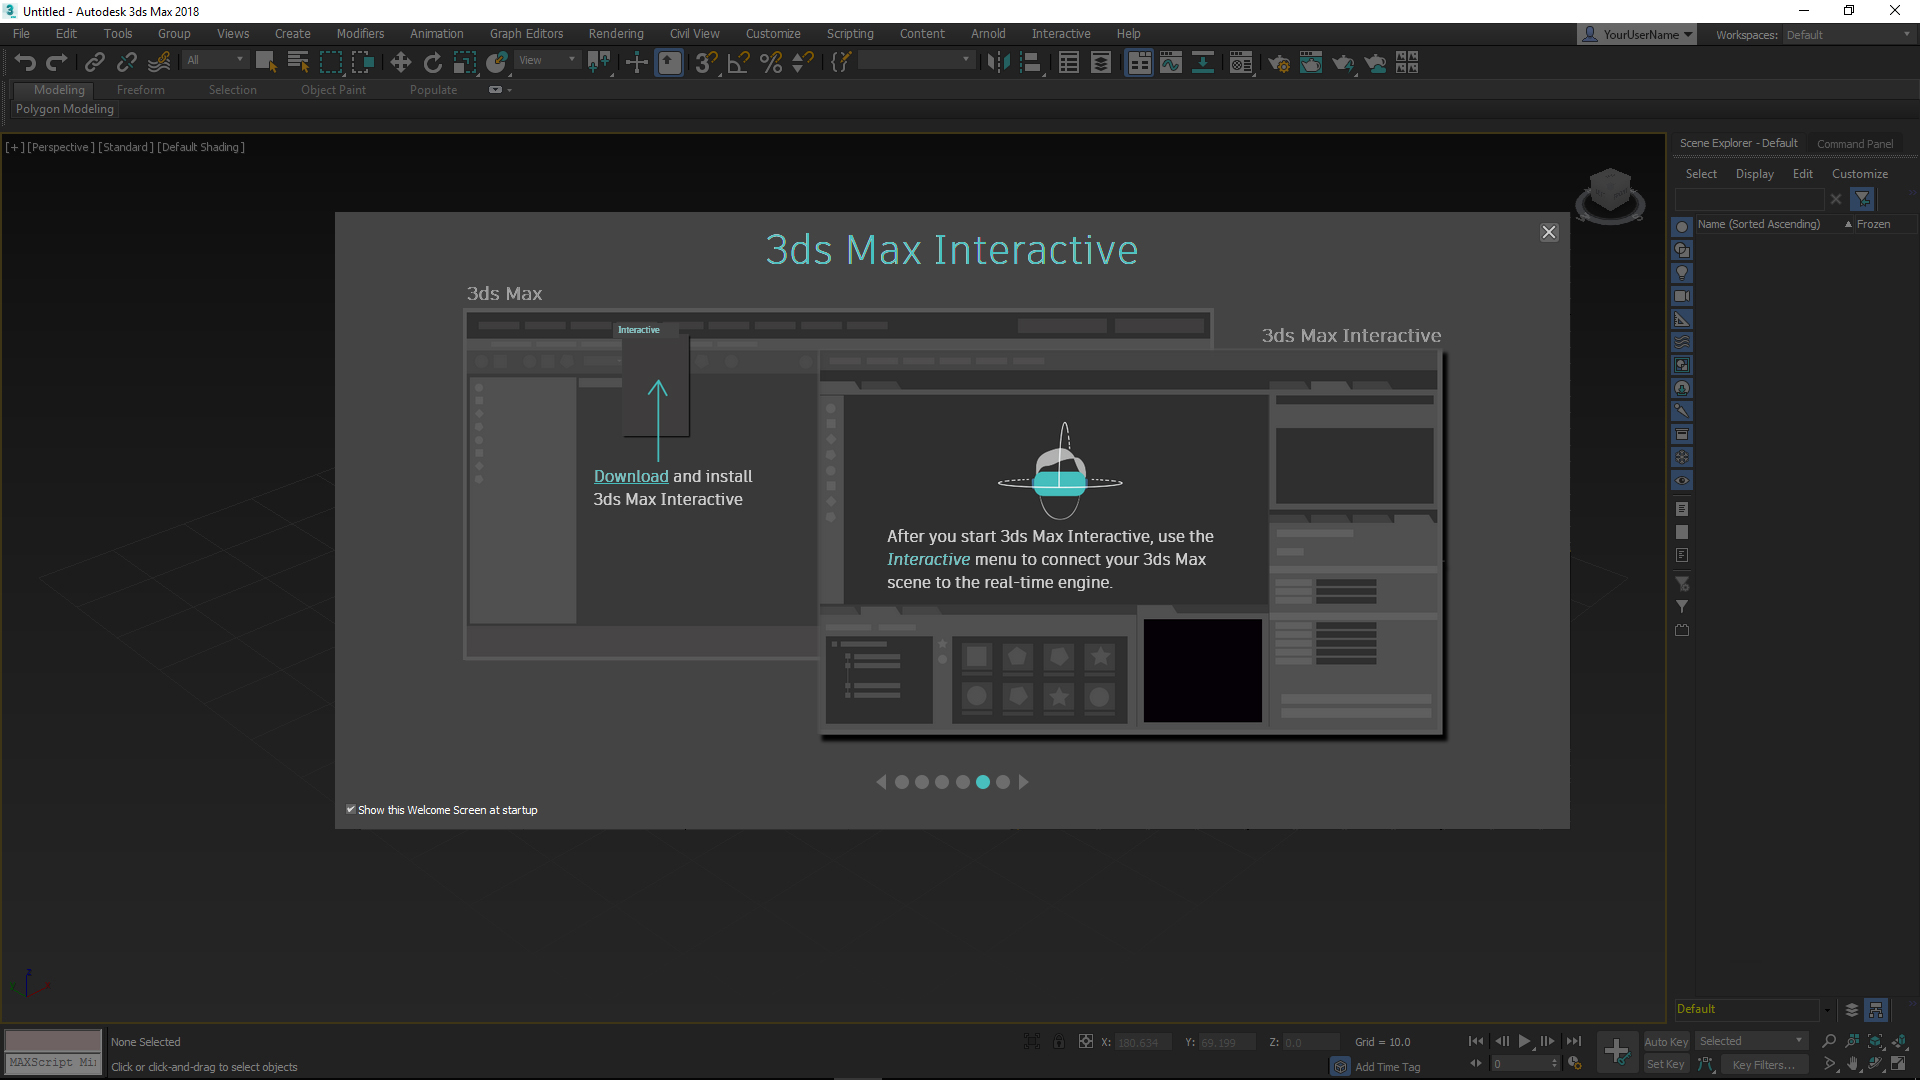 Real-time VR and 3ds Max Interactive